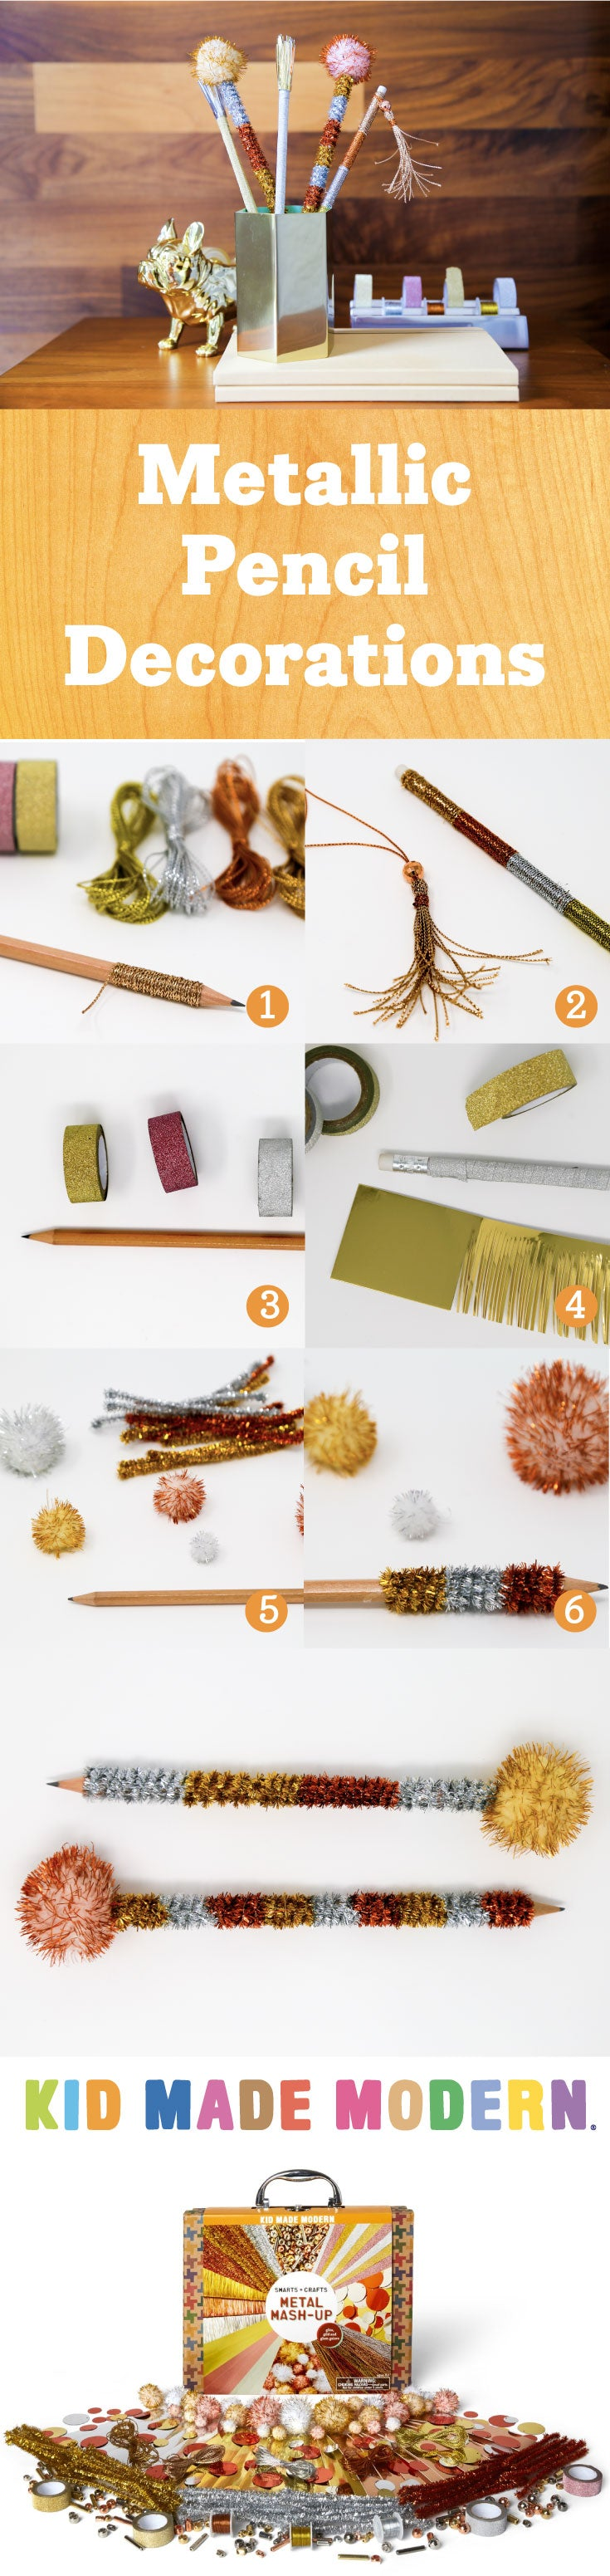 Metallic Pencil Decorations Pinterest